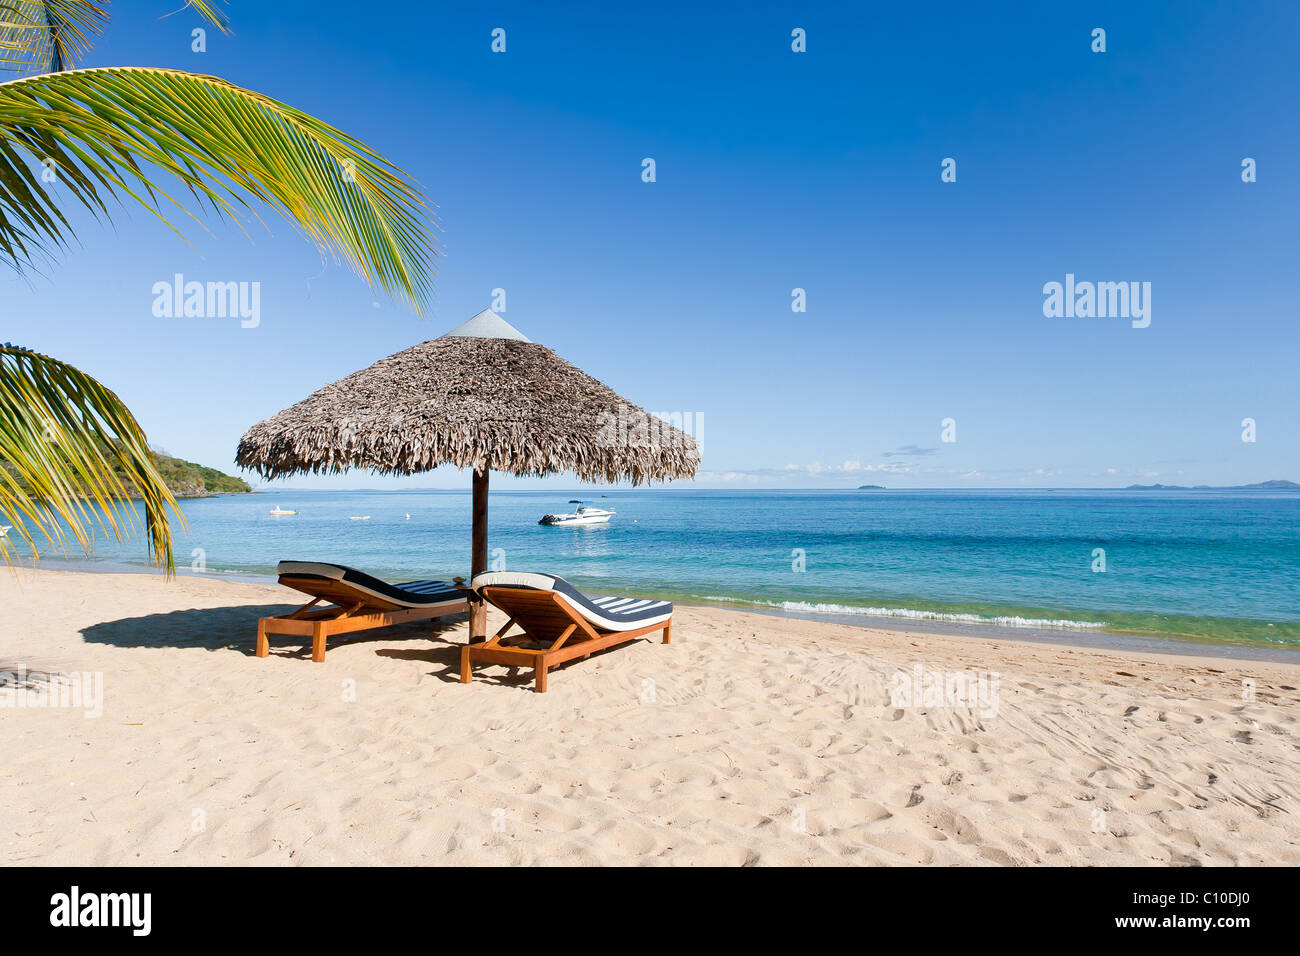 Tropical beach landscape with deckchair and parasol, from Nosy Be, Madagascar - Stock Image